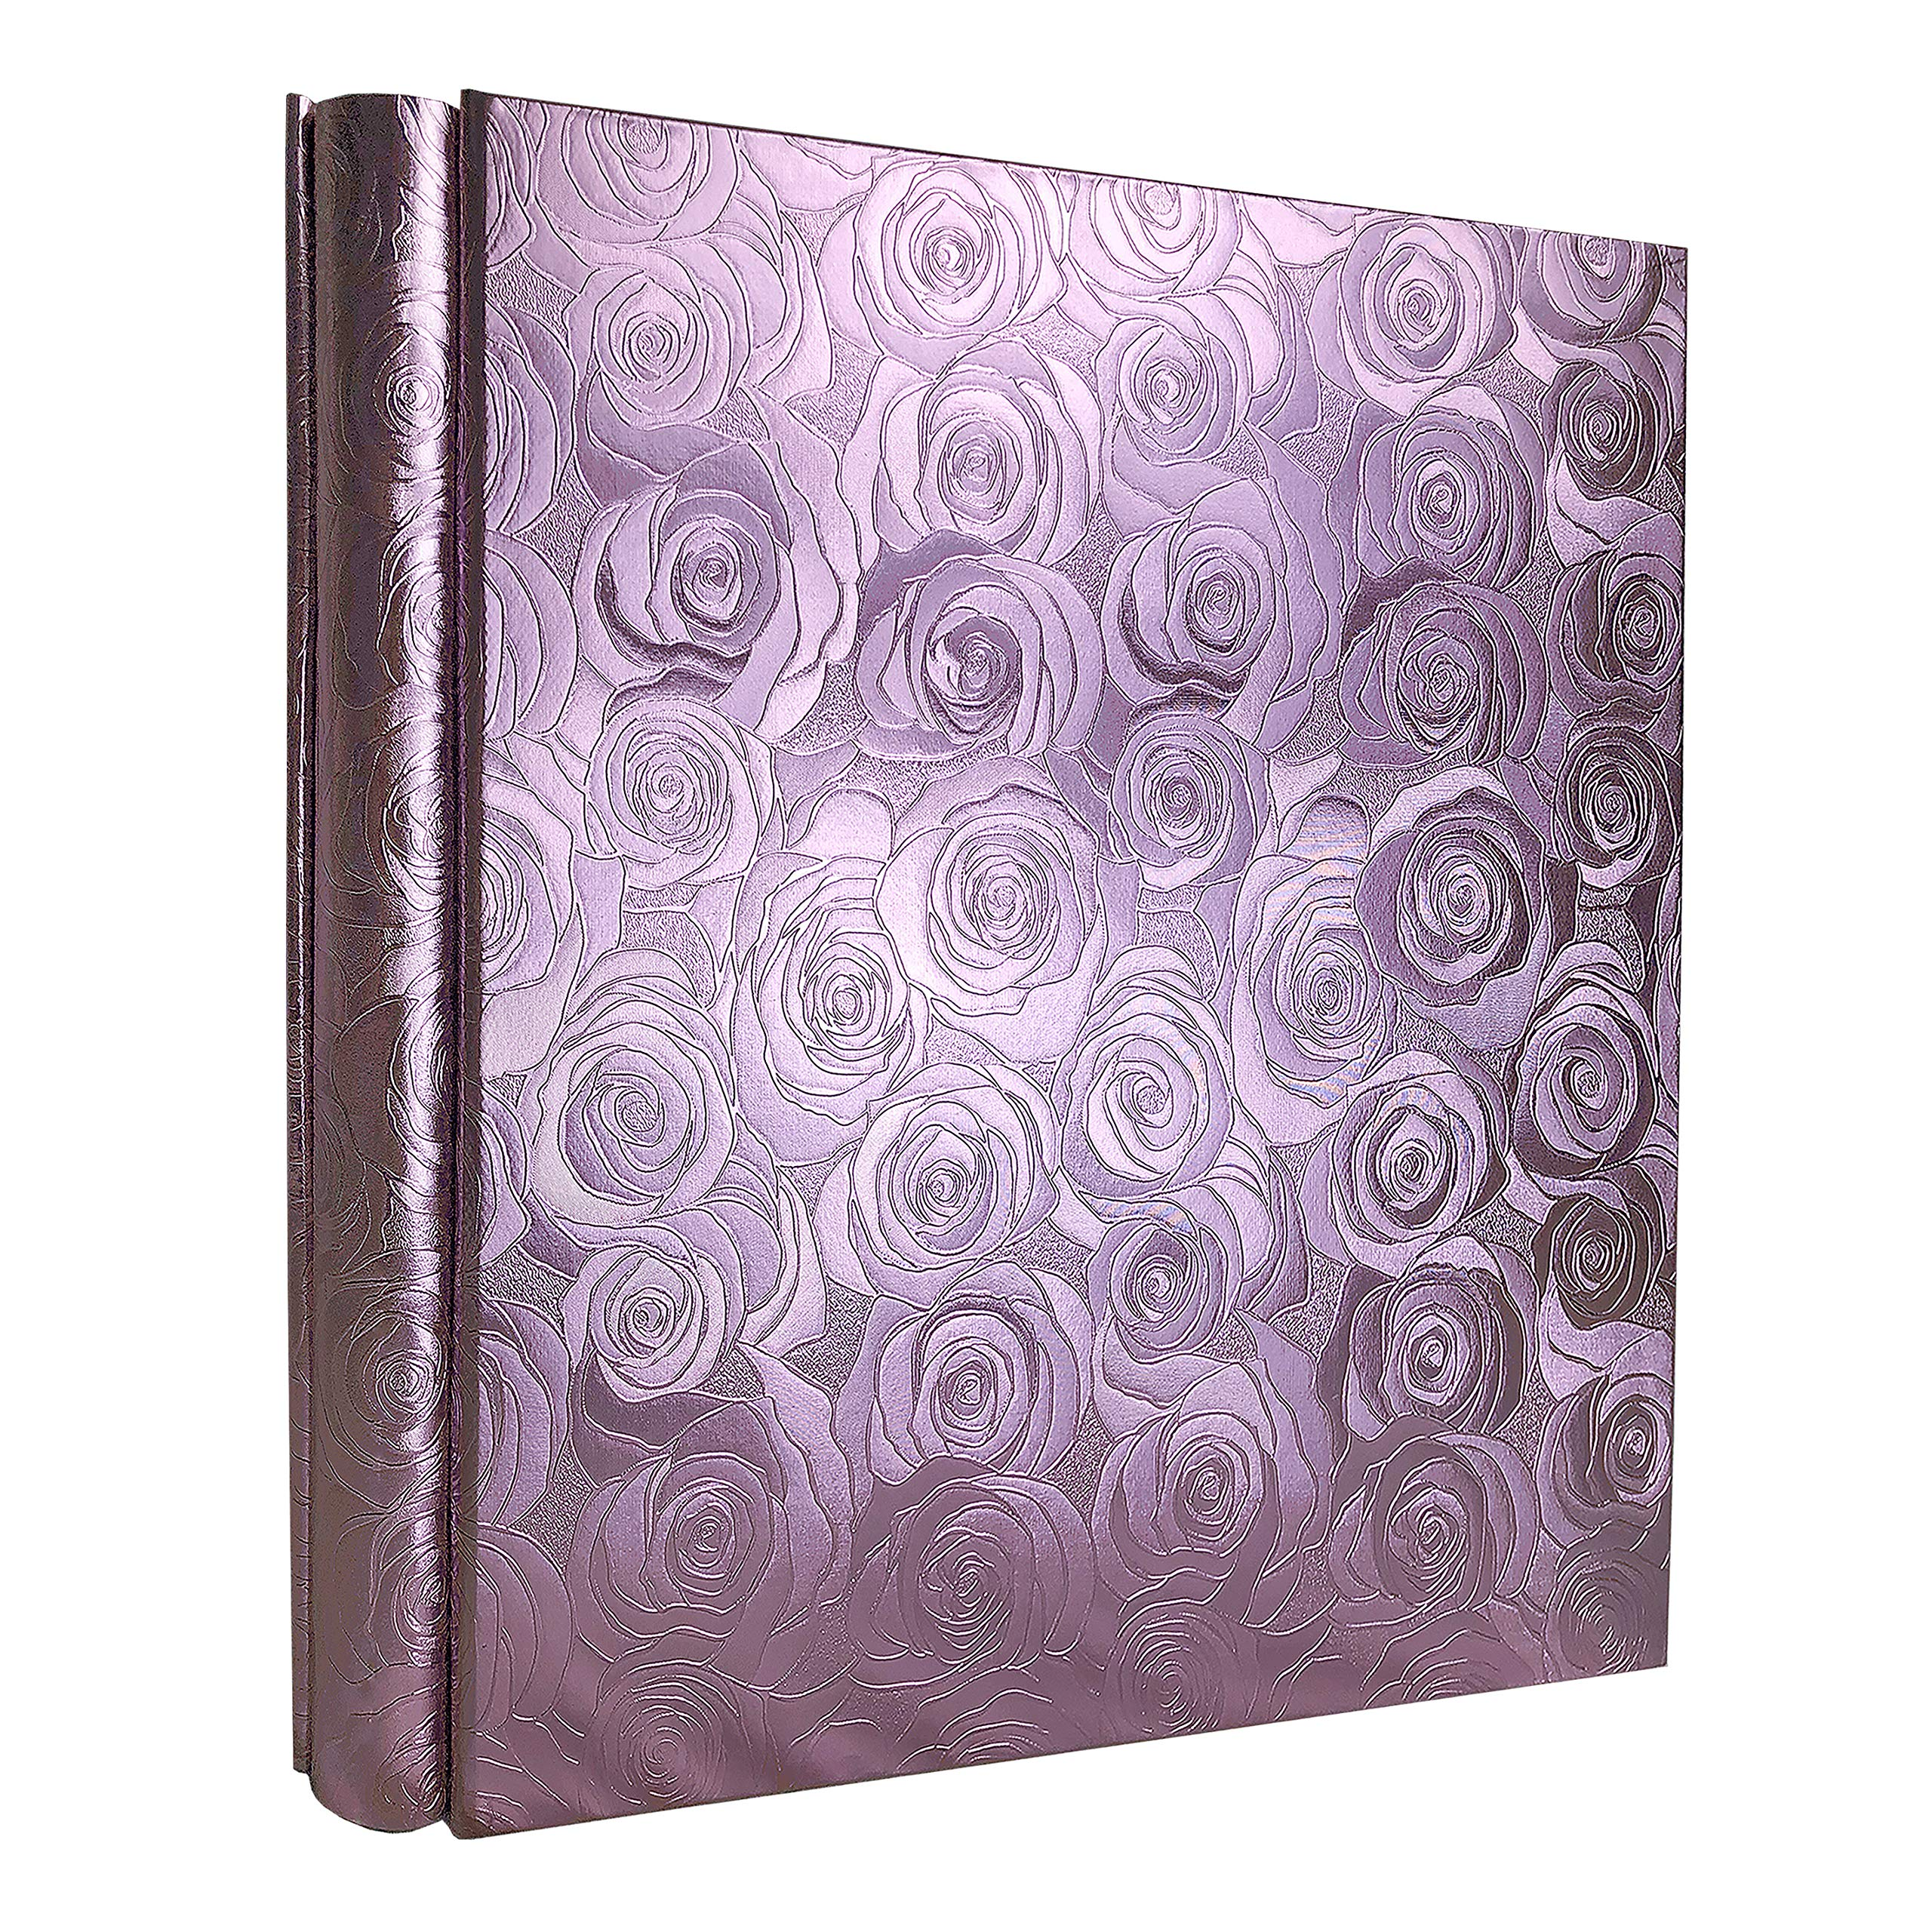 RECUTMS Large Photo Album 600 4x6 Photos 5 Pockets Per Page Memo Album Adventure Book Travel Record Birthday Gift for Couples (Purple Rose) by RECUTMS